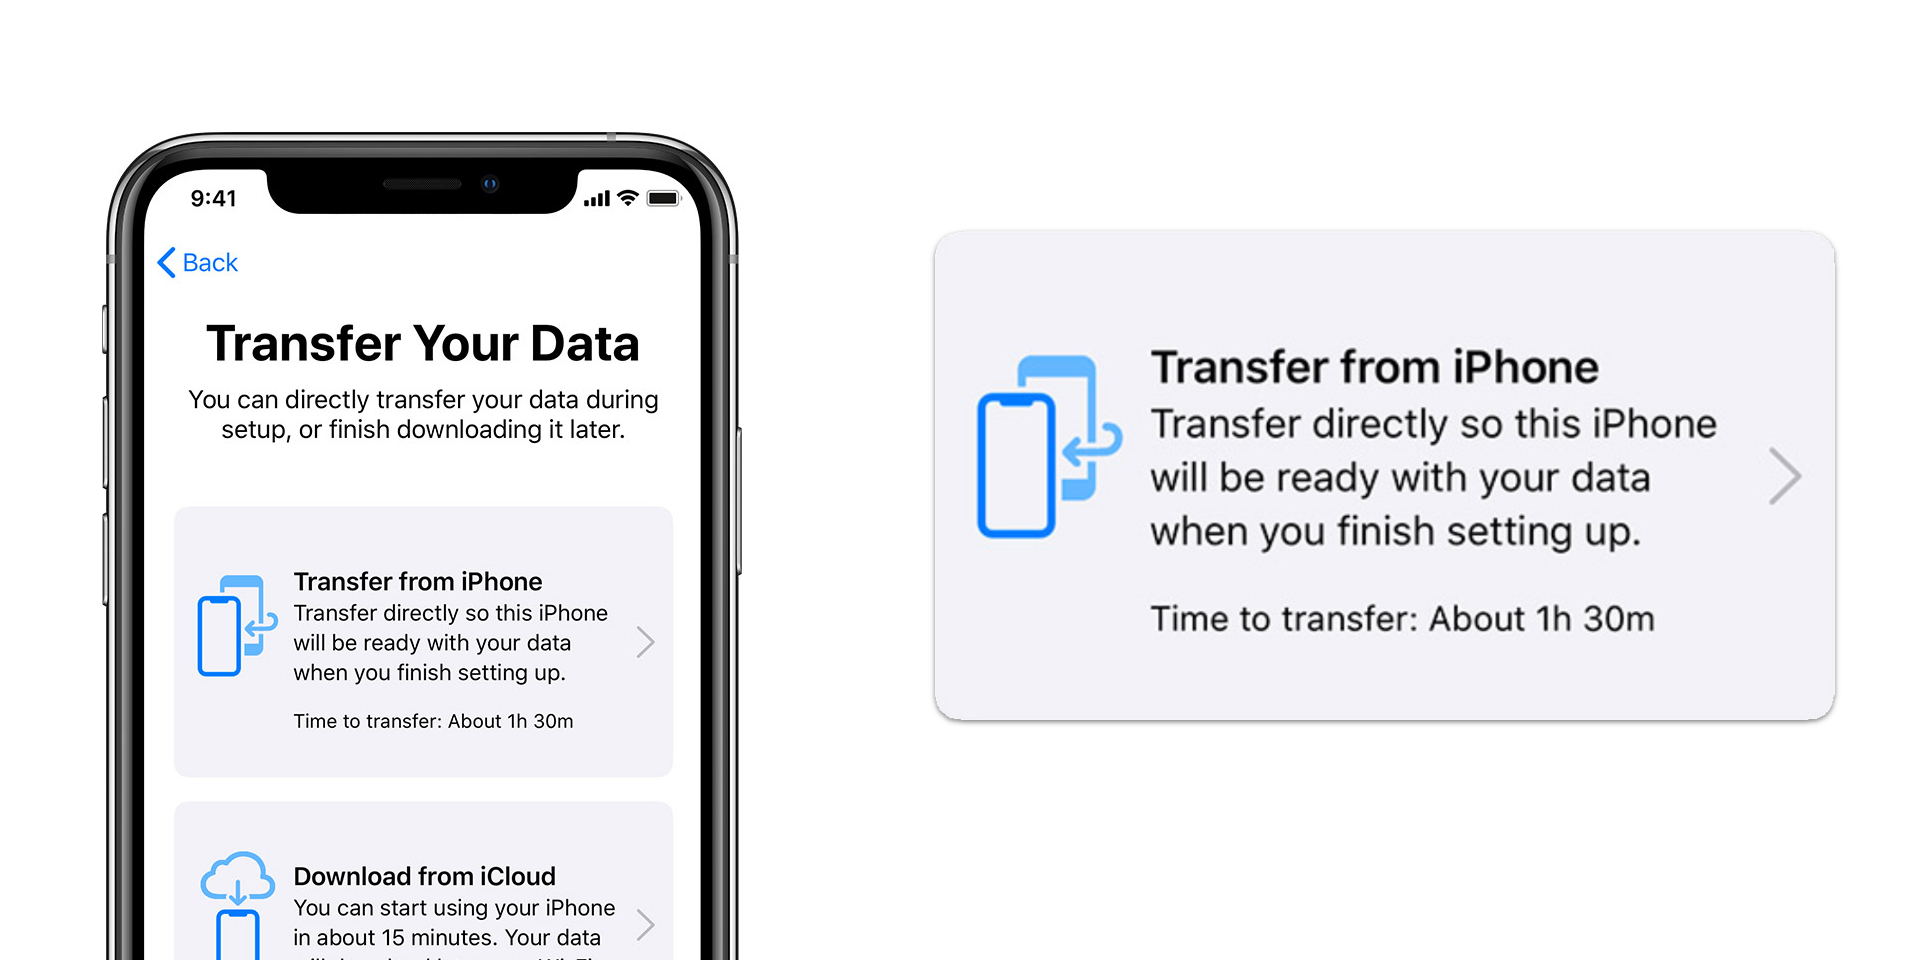 iOS 12.4: Transfer data directly to a new iPhone wirelessly, or using a cable